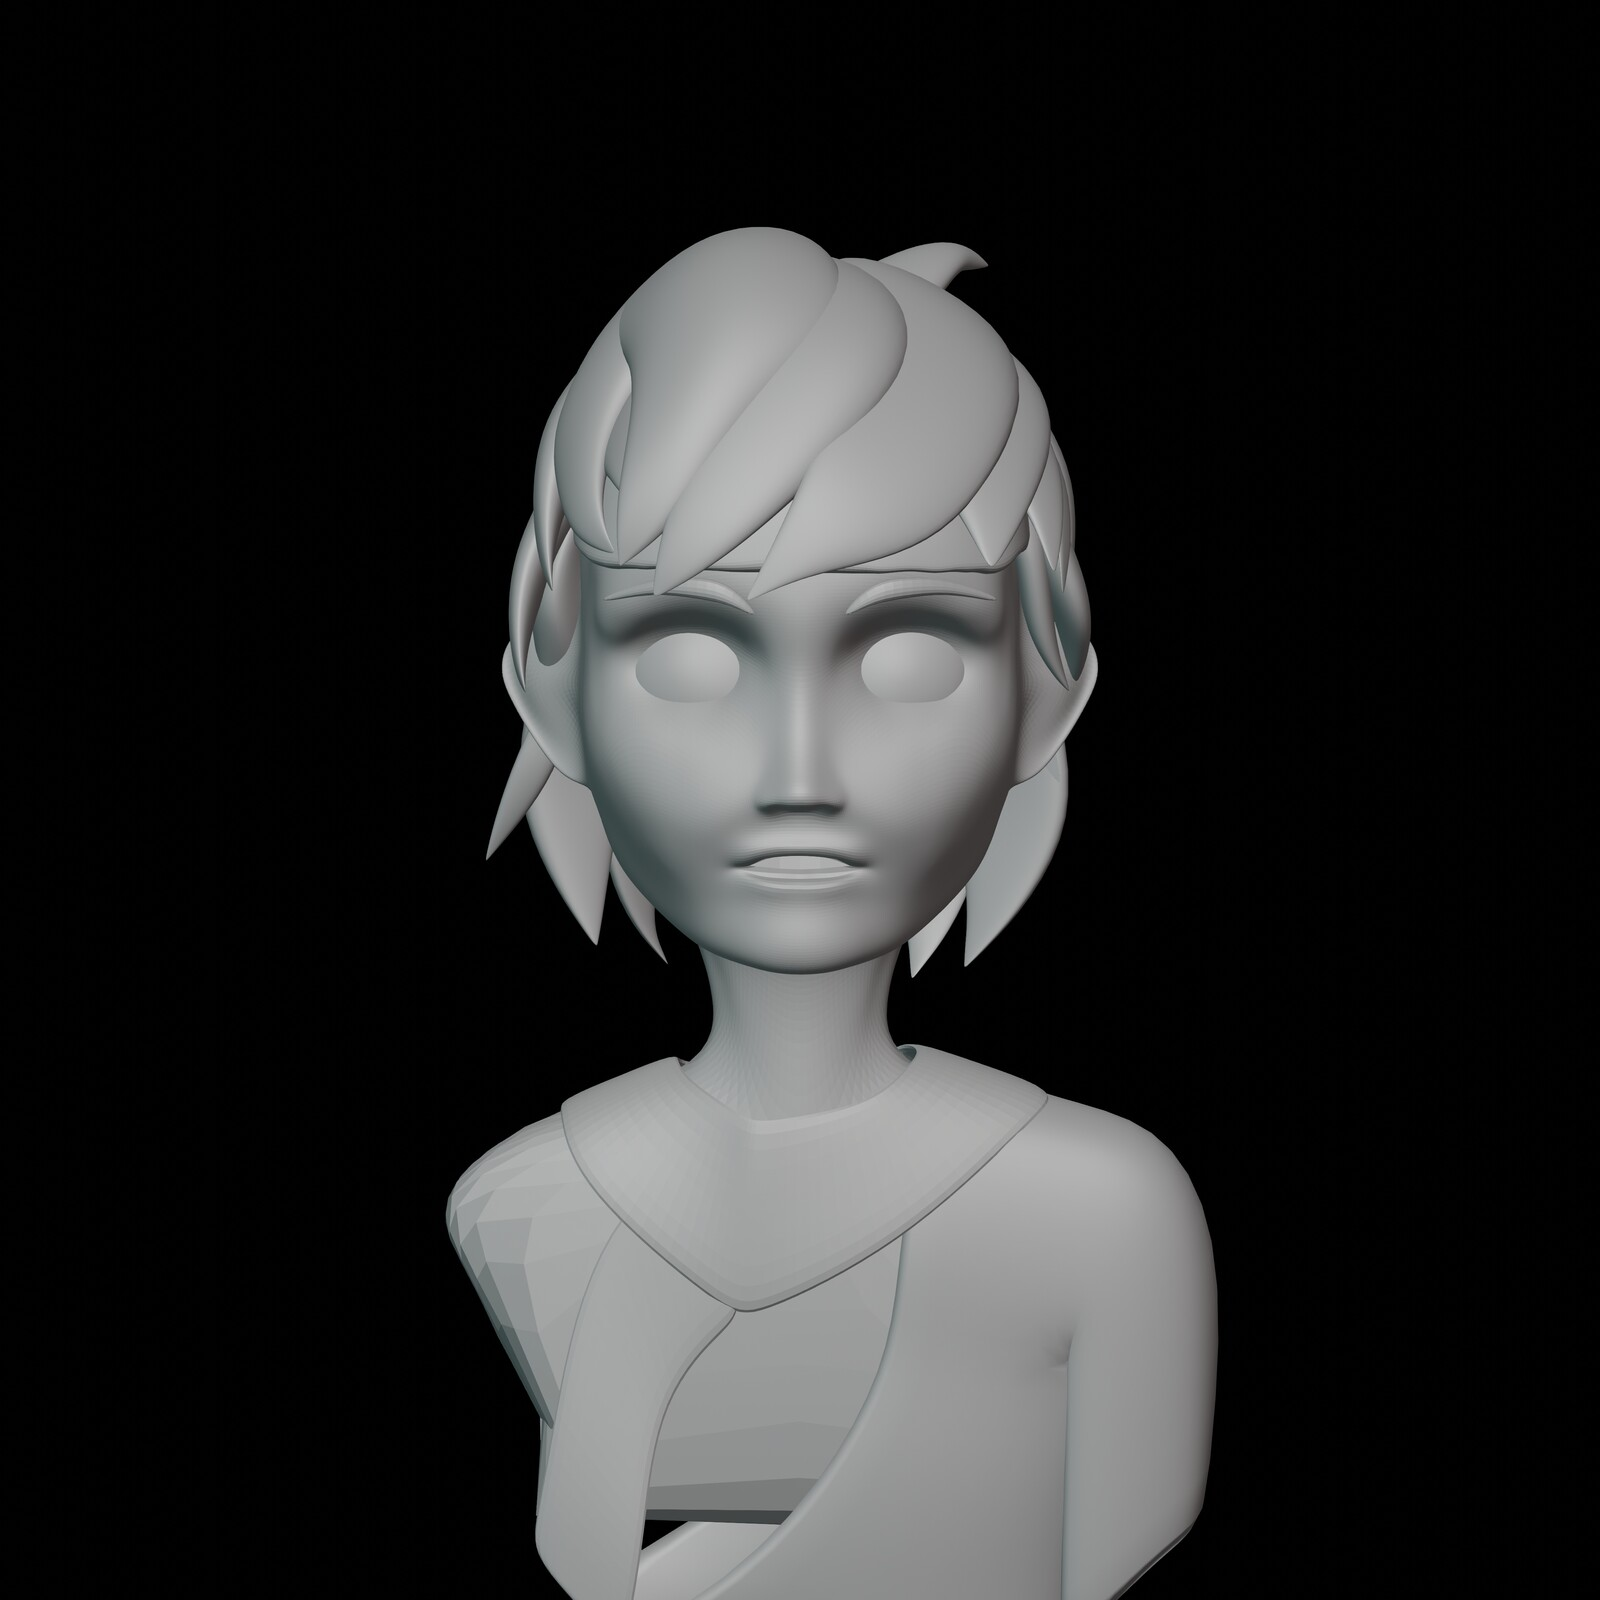 Iteration #6: Some more minor tweaks to the width of the upper-part of the head. I also made the head a little less tall to match the reference further. I also added a part of the chest.